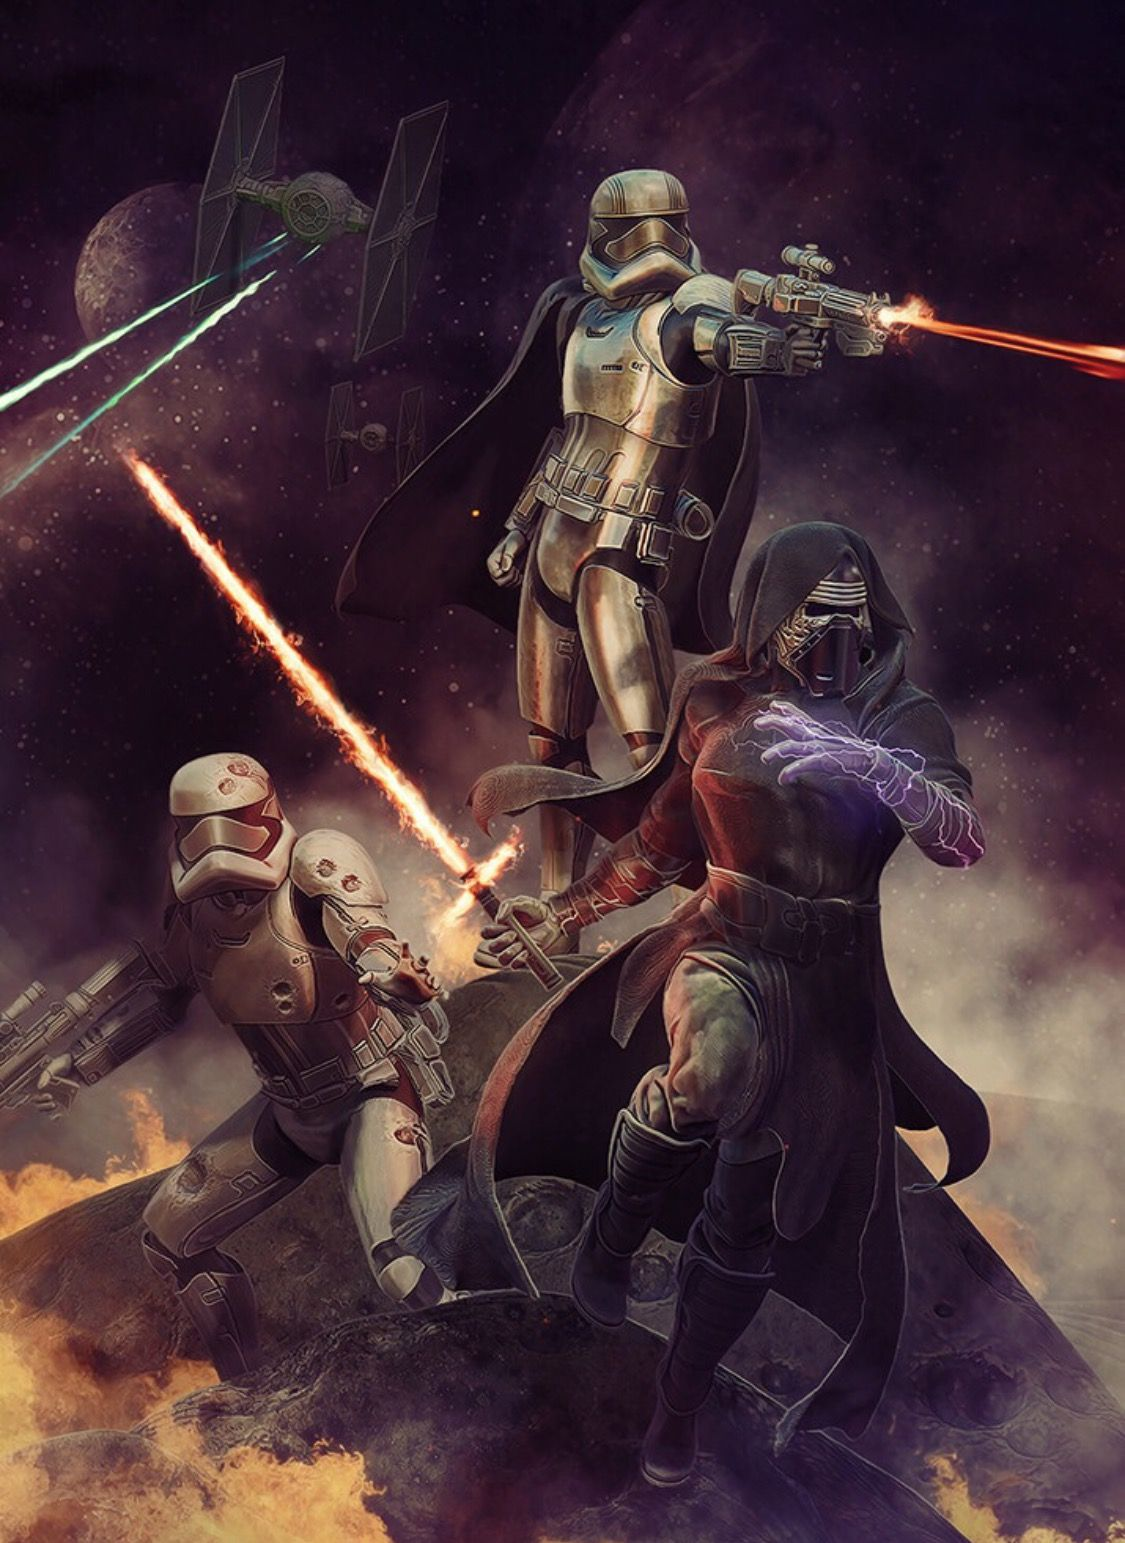 Pin By Amanda Heckenbach On The Force Awakens Star Wars Painting Star Wars Vii Star Wars Images